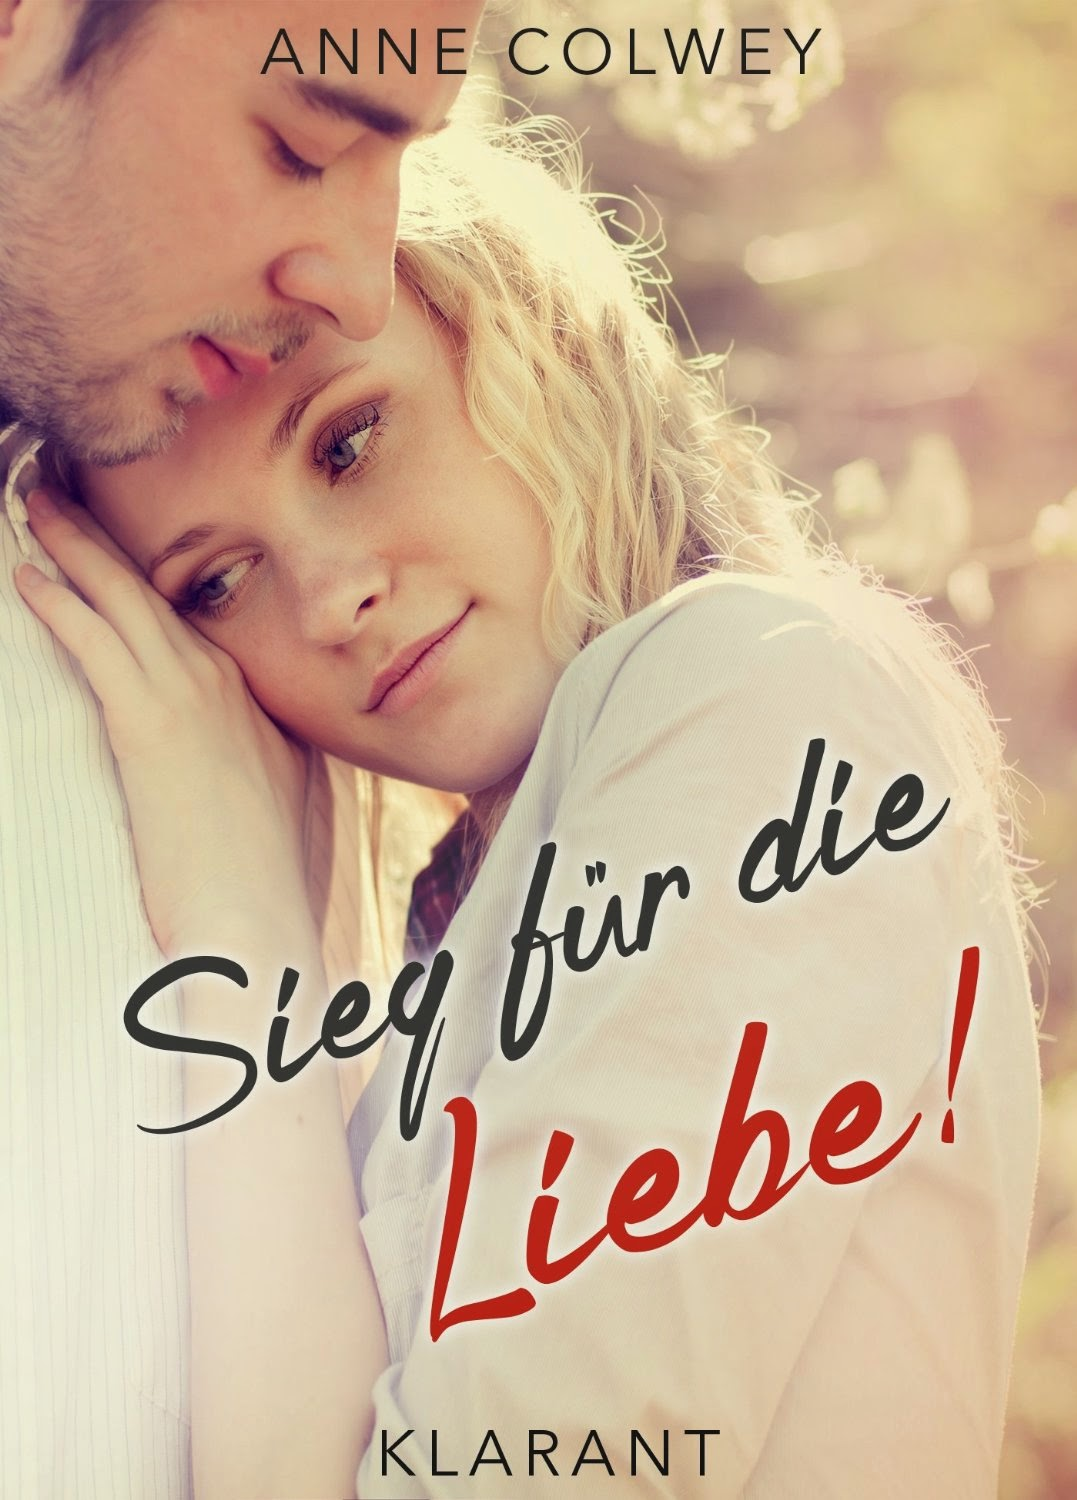 http://www.amazon.de/Sieg-f%C3%BCr-die-Liebe-Roman-ebook/dp/B00UXZH6H2/ref=sr_1_1?ie=UTF8&qid=1428149864&sr=8-1&keywords=anne+colwey